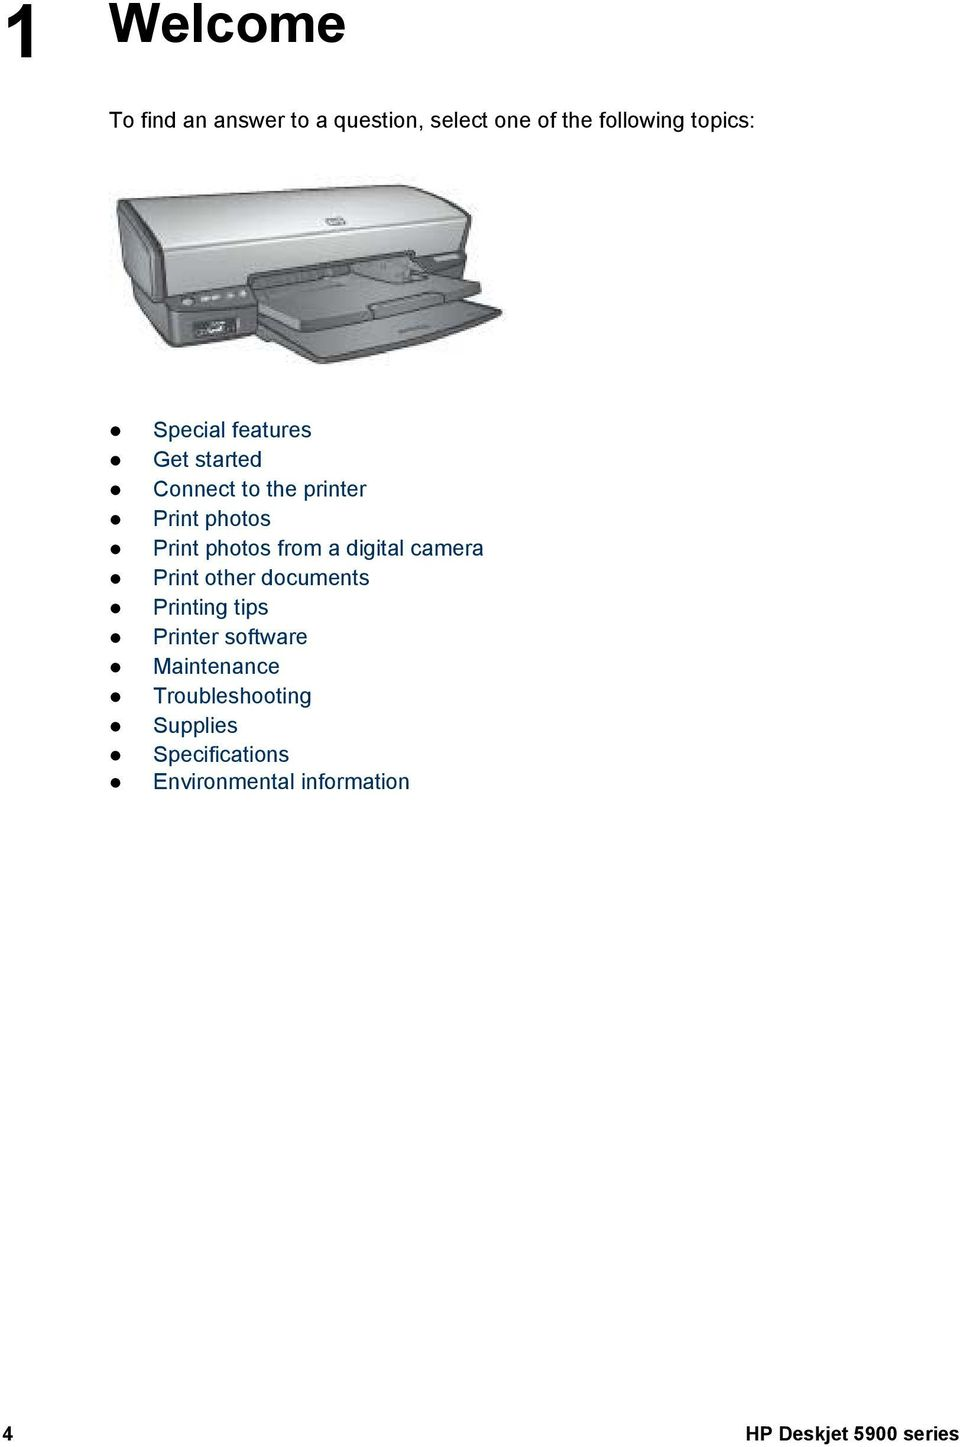 a digital camera Print other documents Printing tips Printer software Maintenance